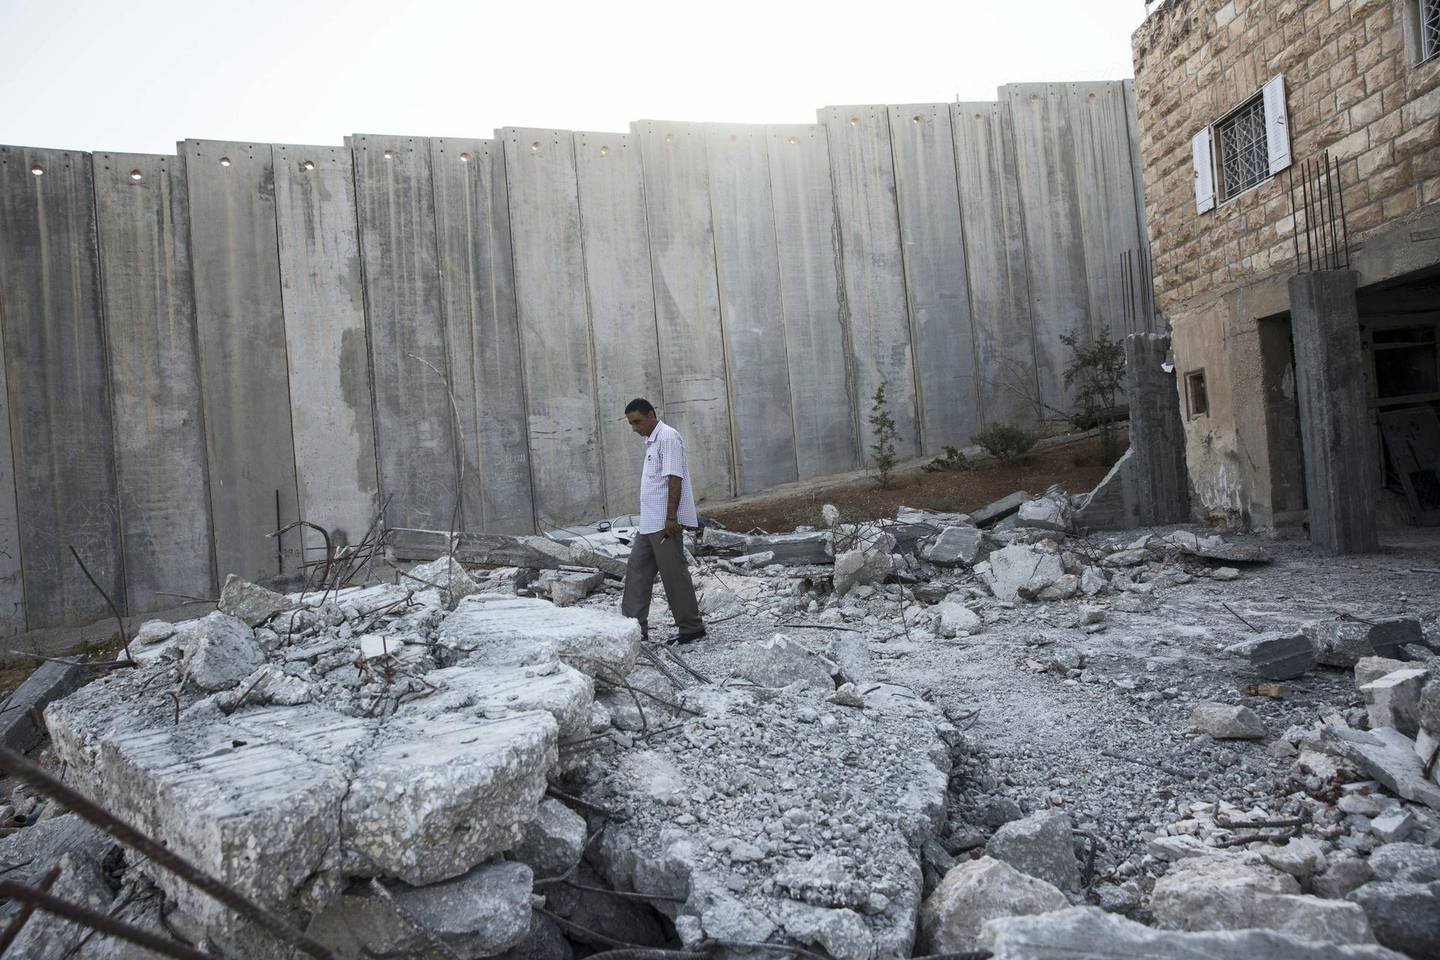 Musa Wohish,49, walks in the rubble of the home his brother tried to build next to his grandfather's home in the divided West Bank village of Abu Dis on September 2,2018. Musa has not been able to travel to Jerusalem since he was a child even though he can see the Al Aqsa Mosque from high points that overlook Israel's  8 meter high separation wall that now divides the village. He has been unemployed for over 15 years . His family has lived in Abu Dis since 1937.(Photo by Heidi Levine for The National ).